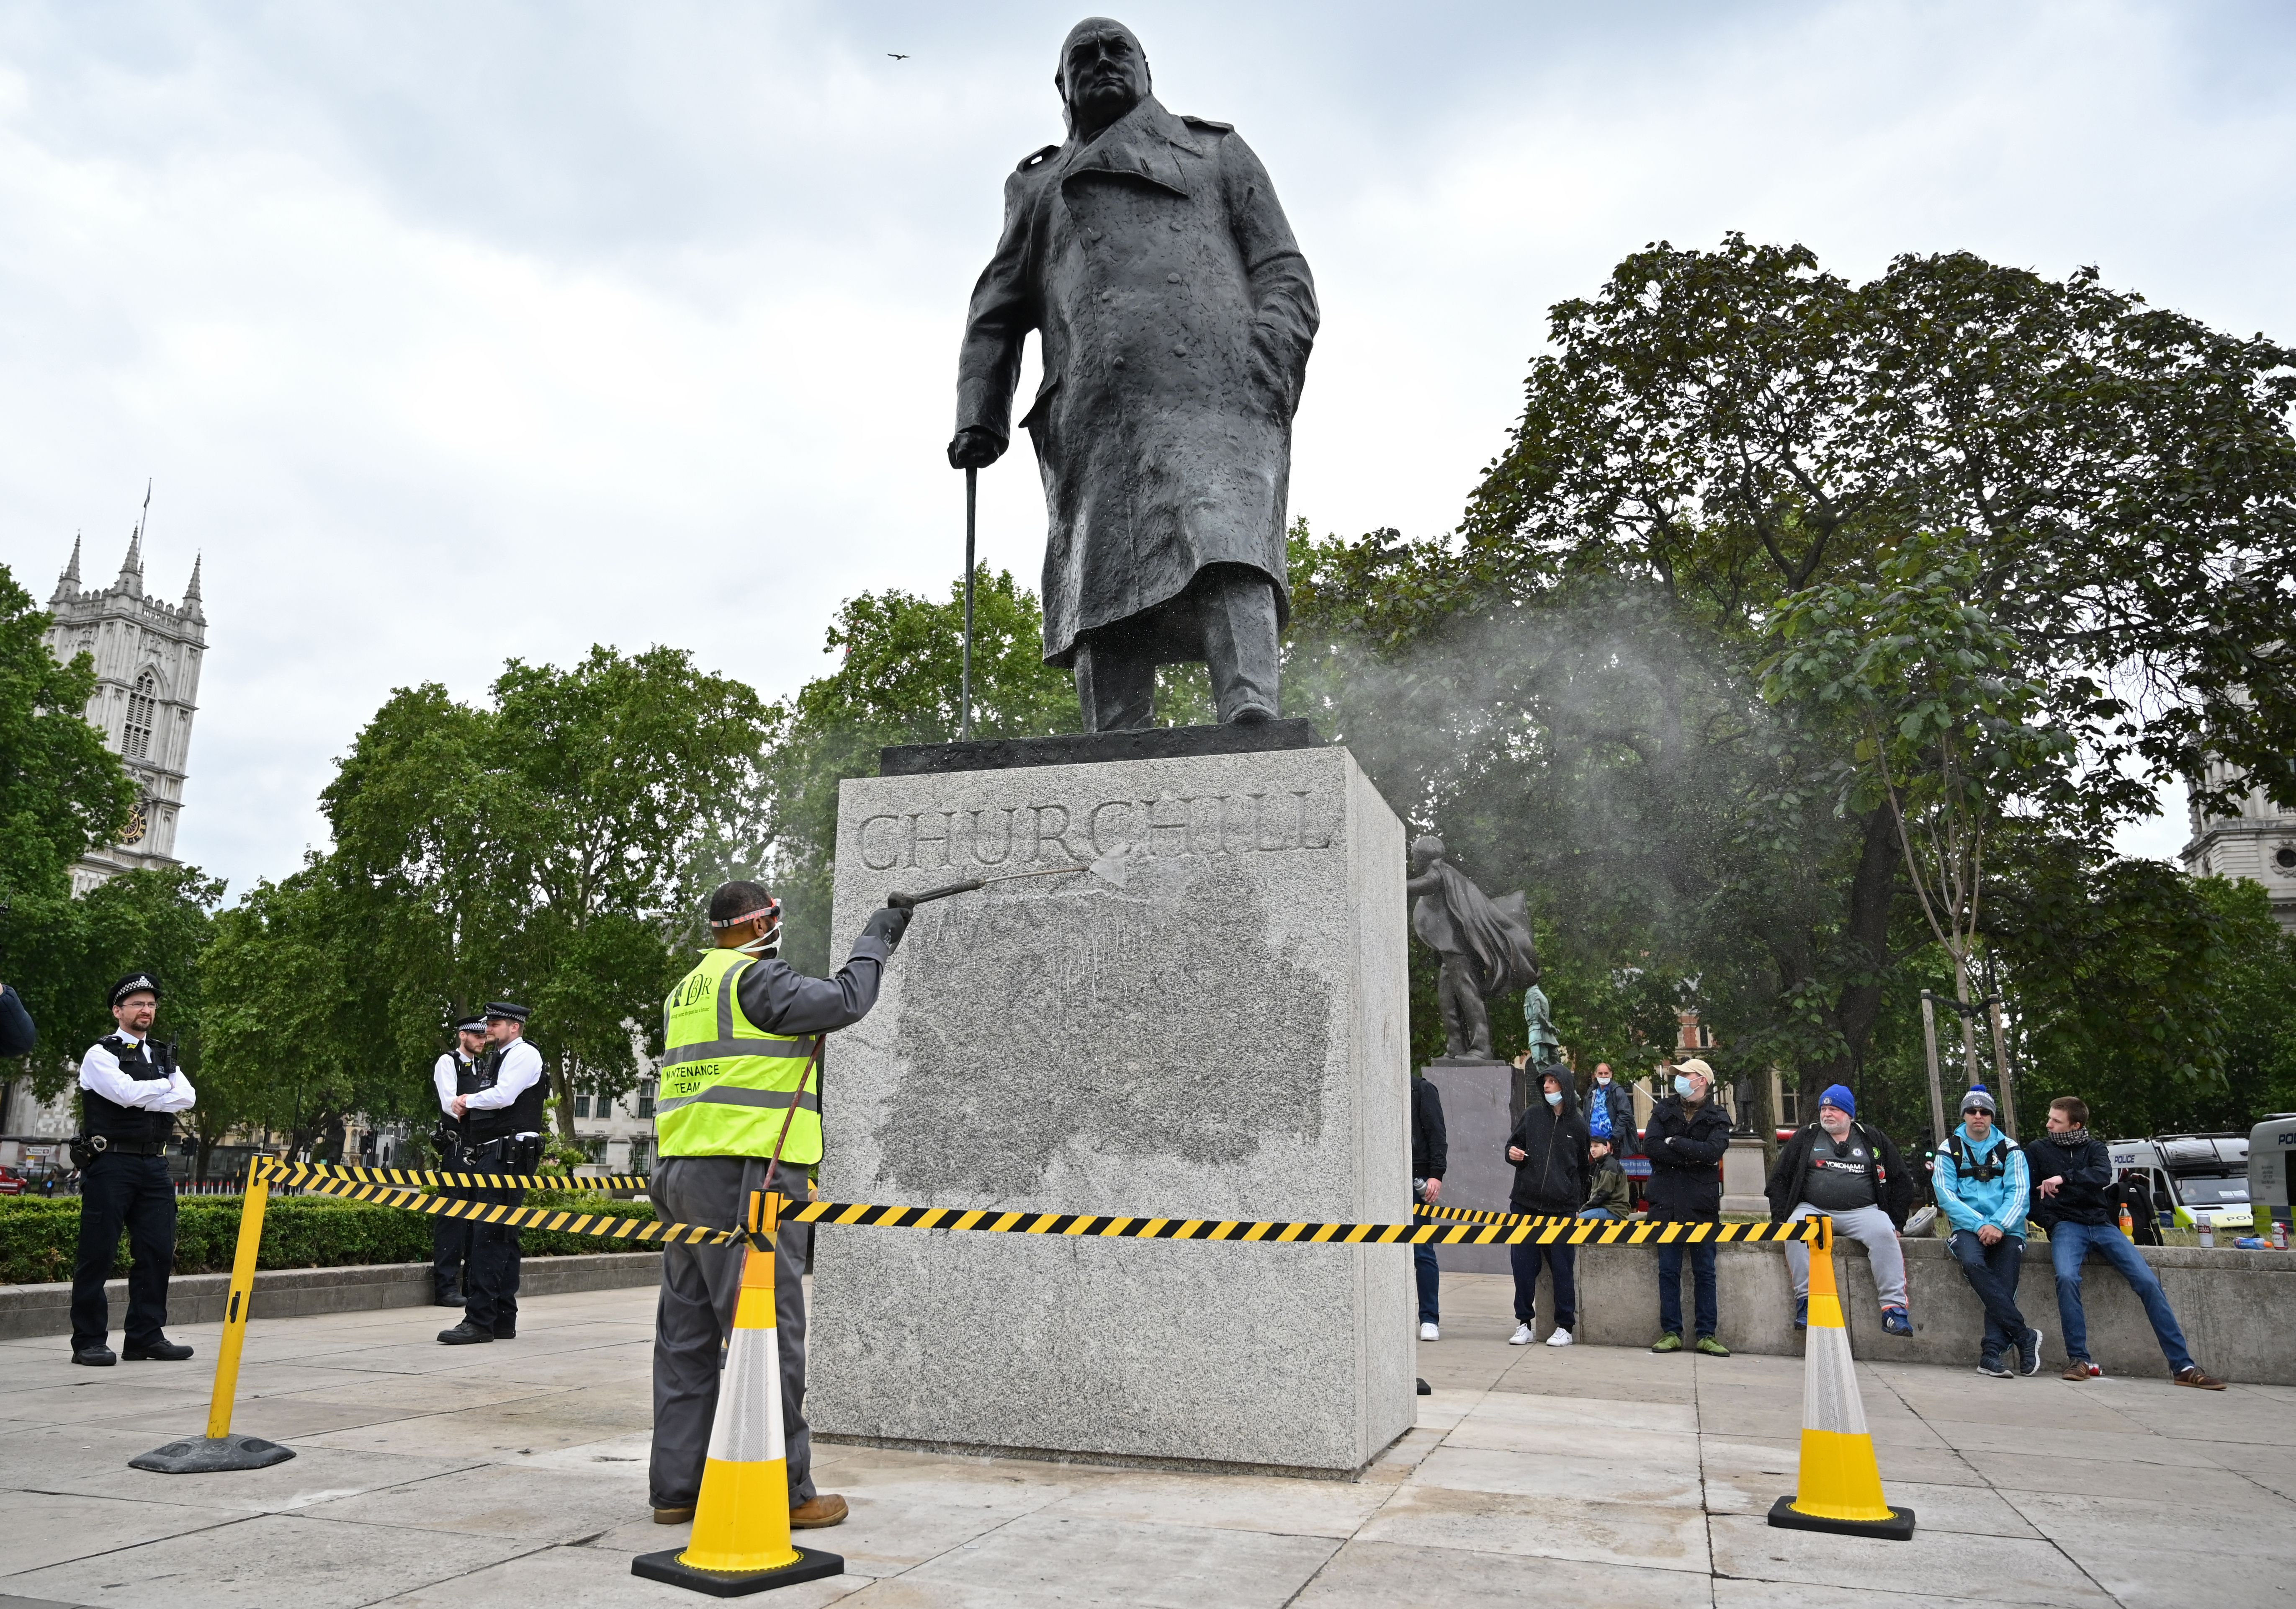 """The statue of former British prime minister Winston Churchill is cleaned in Parliament Square, central London on June 8, 2020, after being defaced, with the words (Churchill) """"was a racist"""" written on it's base by protesters at a demonstration on June 7, 2020, organised to show solidarity with the Black Lives Matter movement. - Most marches at the weekend were peaceful but there were flashes of violence, including in London, where the statue of World War II leader Winston Churchill in Parliament Square was defaced. (Photo by JUSTIN TALLIS / AFP) (Photo by JUSTIN TALLIS/AFP via Getty Images)"""